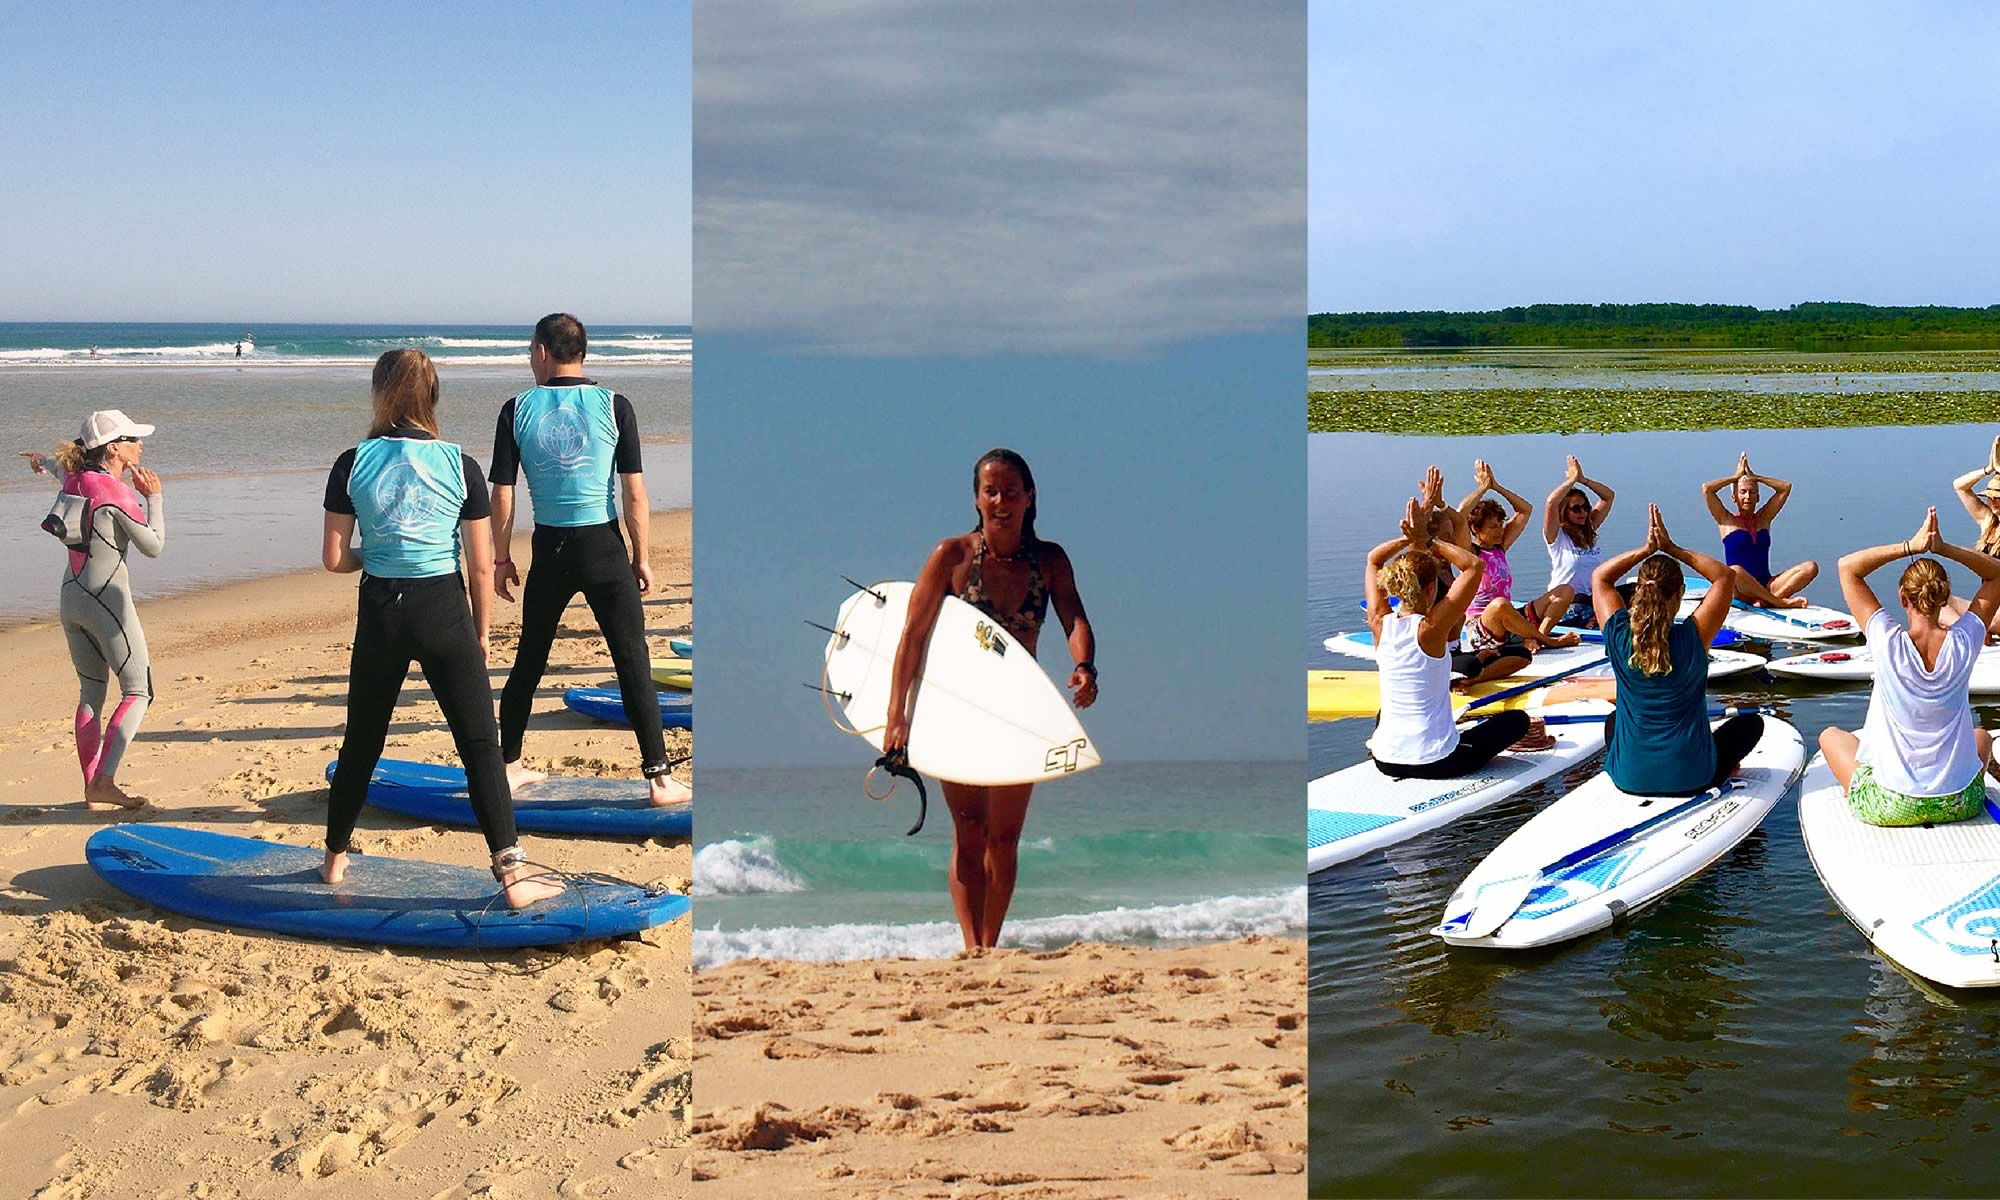 ENERGY - SURF - YOGA - PILATES : Surf School - MESSANGES - AZUR - MOLIETS - LANDES : Energy Surf School - Surf School Messanges - Surf lessons- Surf and Yoga - SUP Yoga Pilates - Hatha Yoga - Yoga class - Pilates class